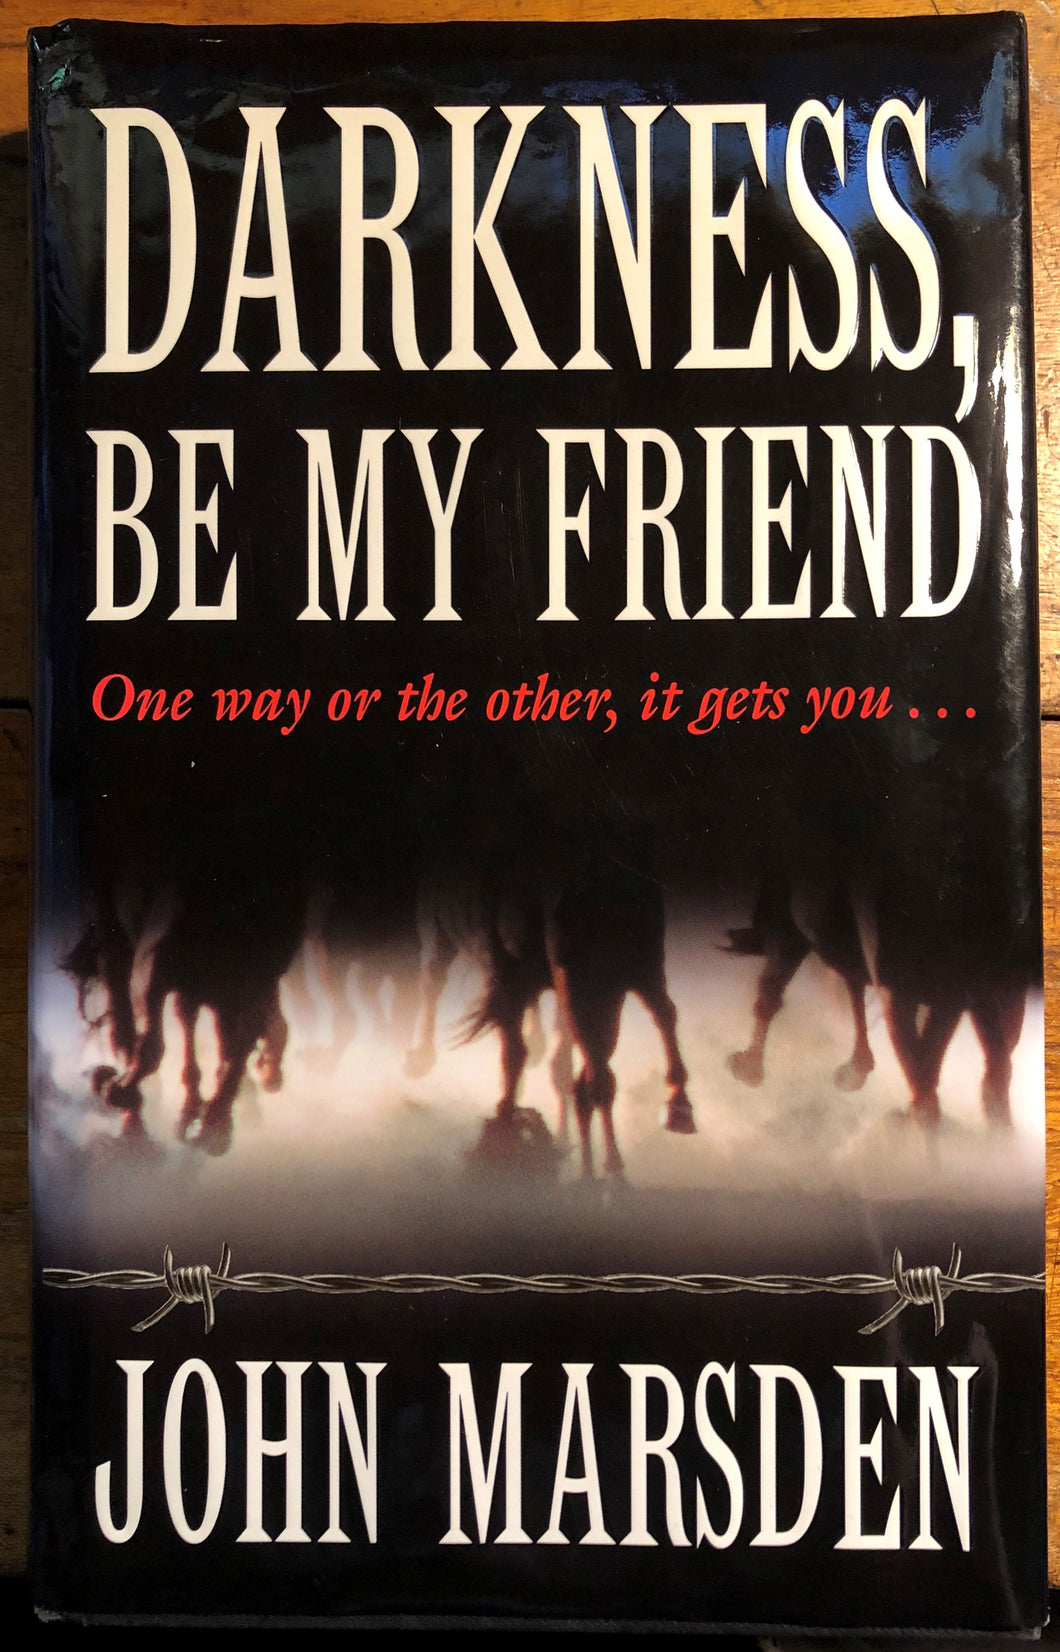 Darkness Be My Friend (First Edition - 1996 Hardcover)